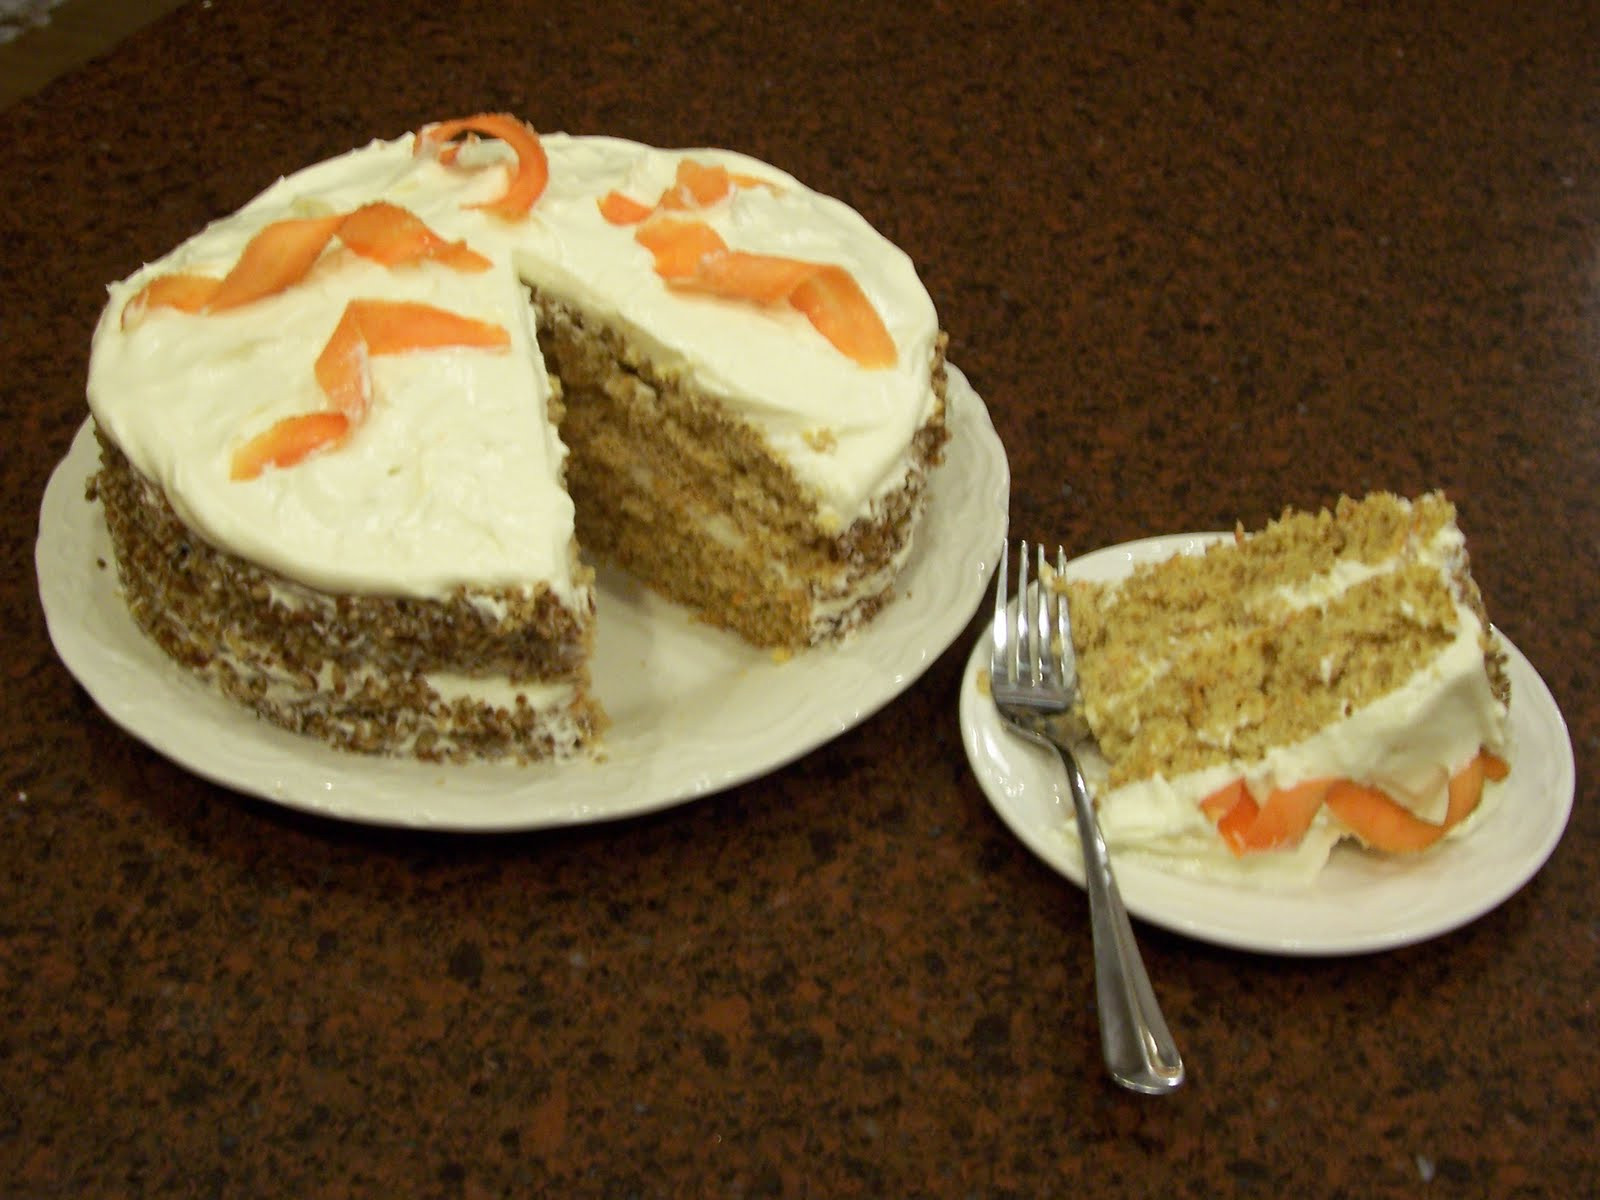 Low Carb Cake Recipes  Delicious Low Carb Recipes Low Carb Carrot Cake